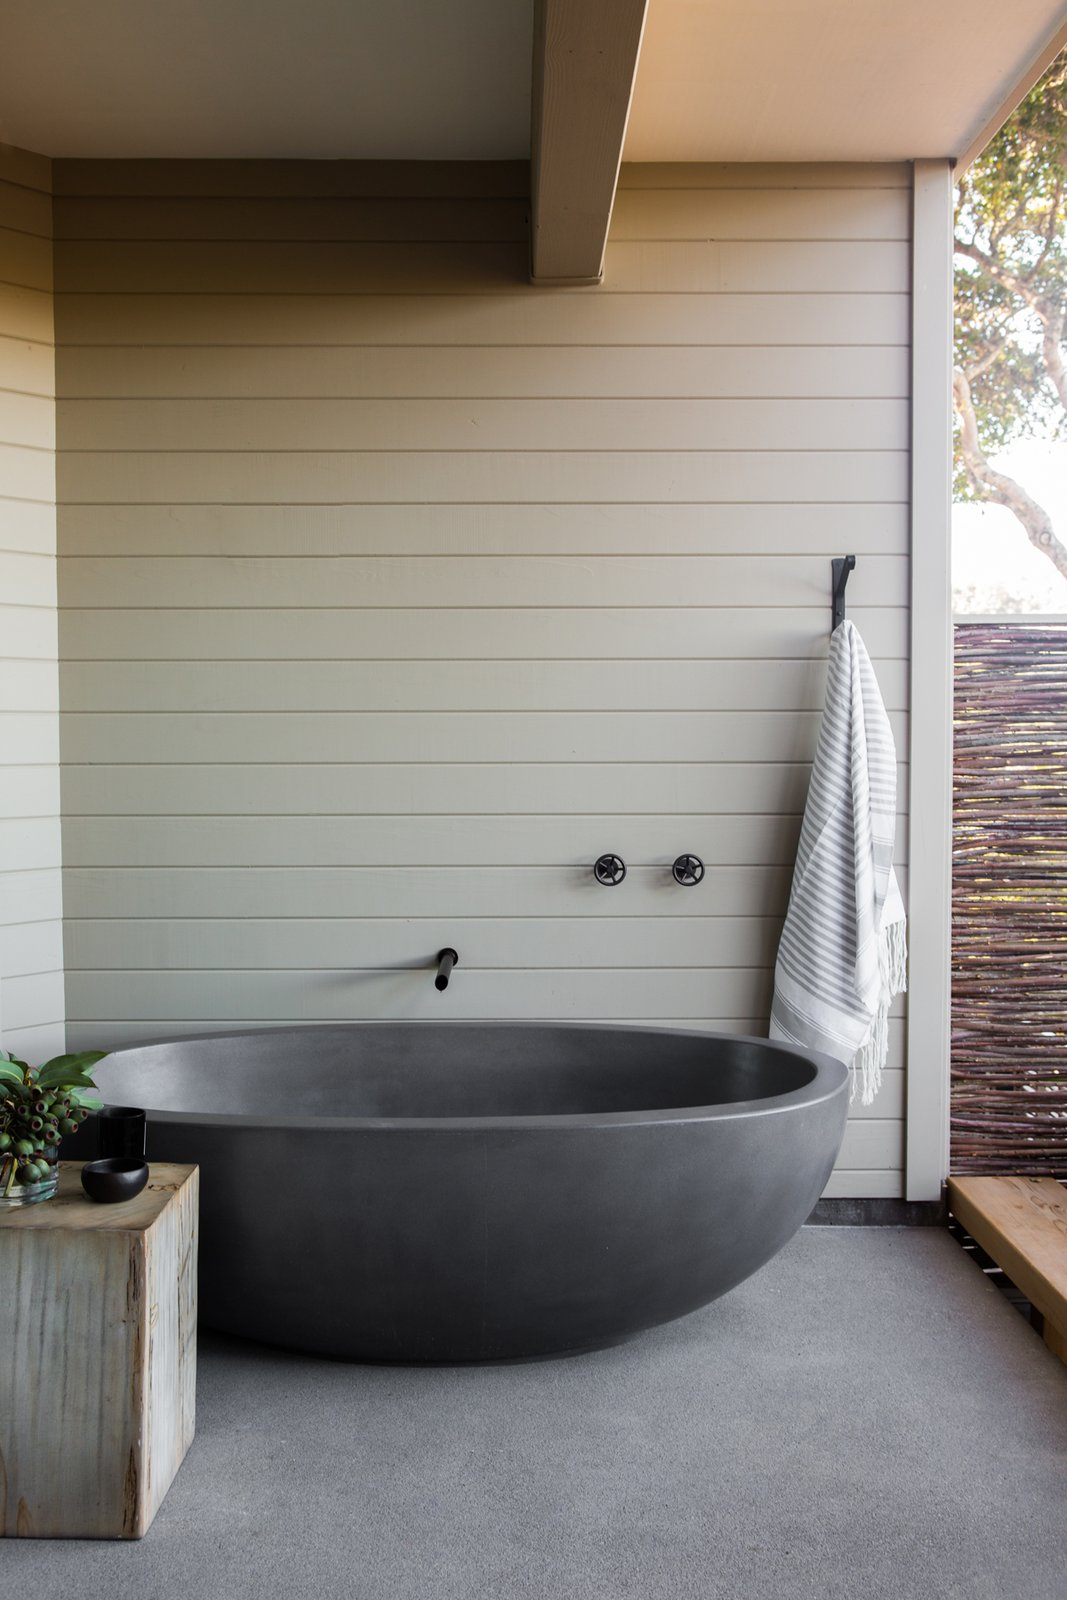 Outdoor and Hot Tub Pools, Tubs, Shower Concreteworks cast the custom outdoor soaking tub.  Photo 10 of 40 in 40 Modern Bathtubs That Soak In the View from A Serene Hotel in Carmel, California